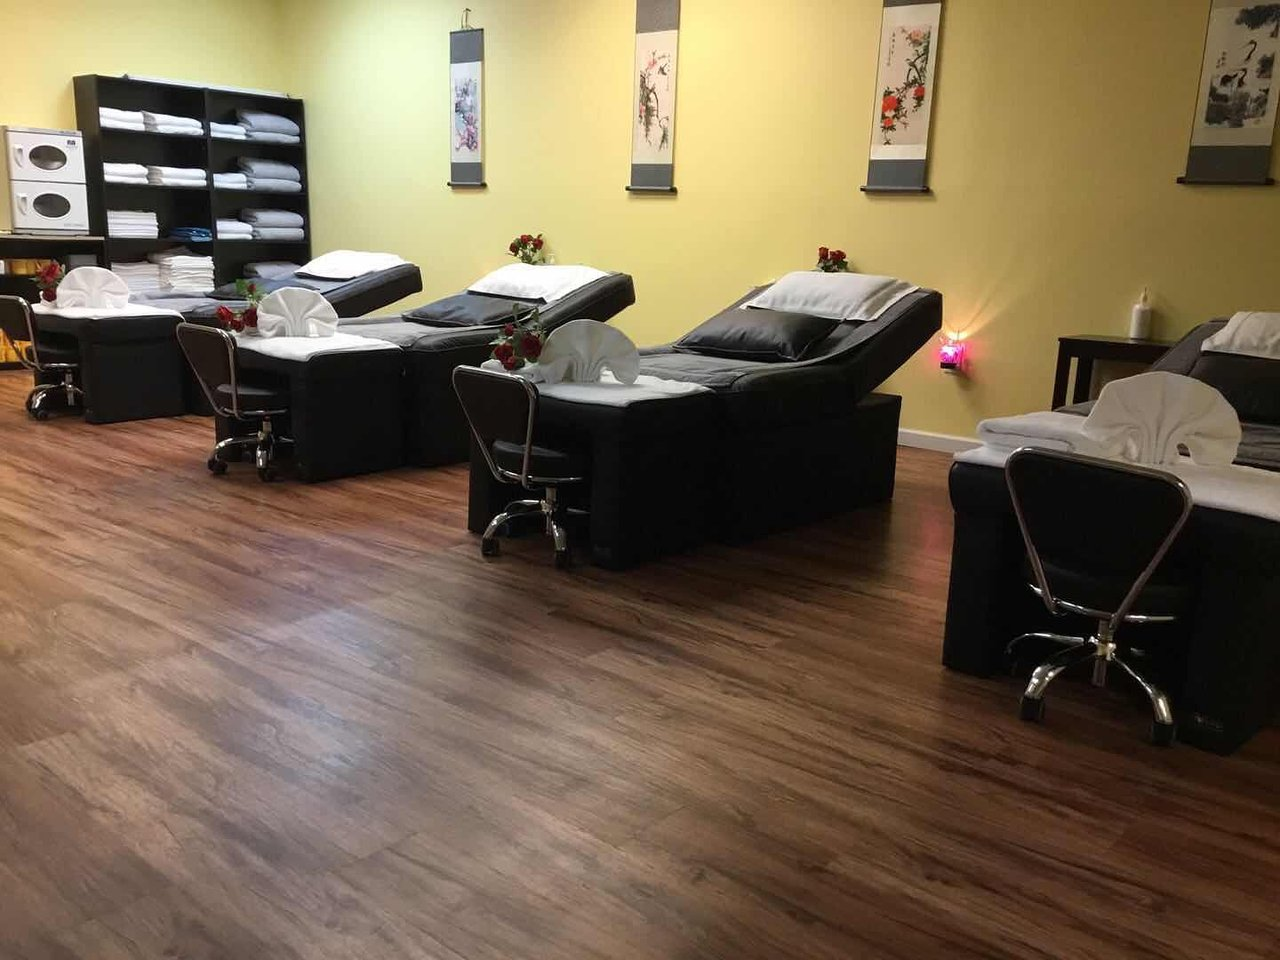 Joy Feet Spa Naples 2020 All You Need To Know Before You Go